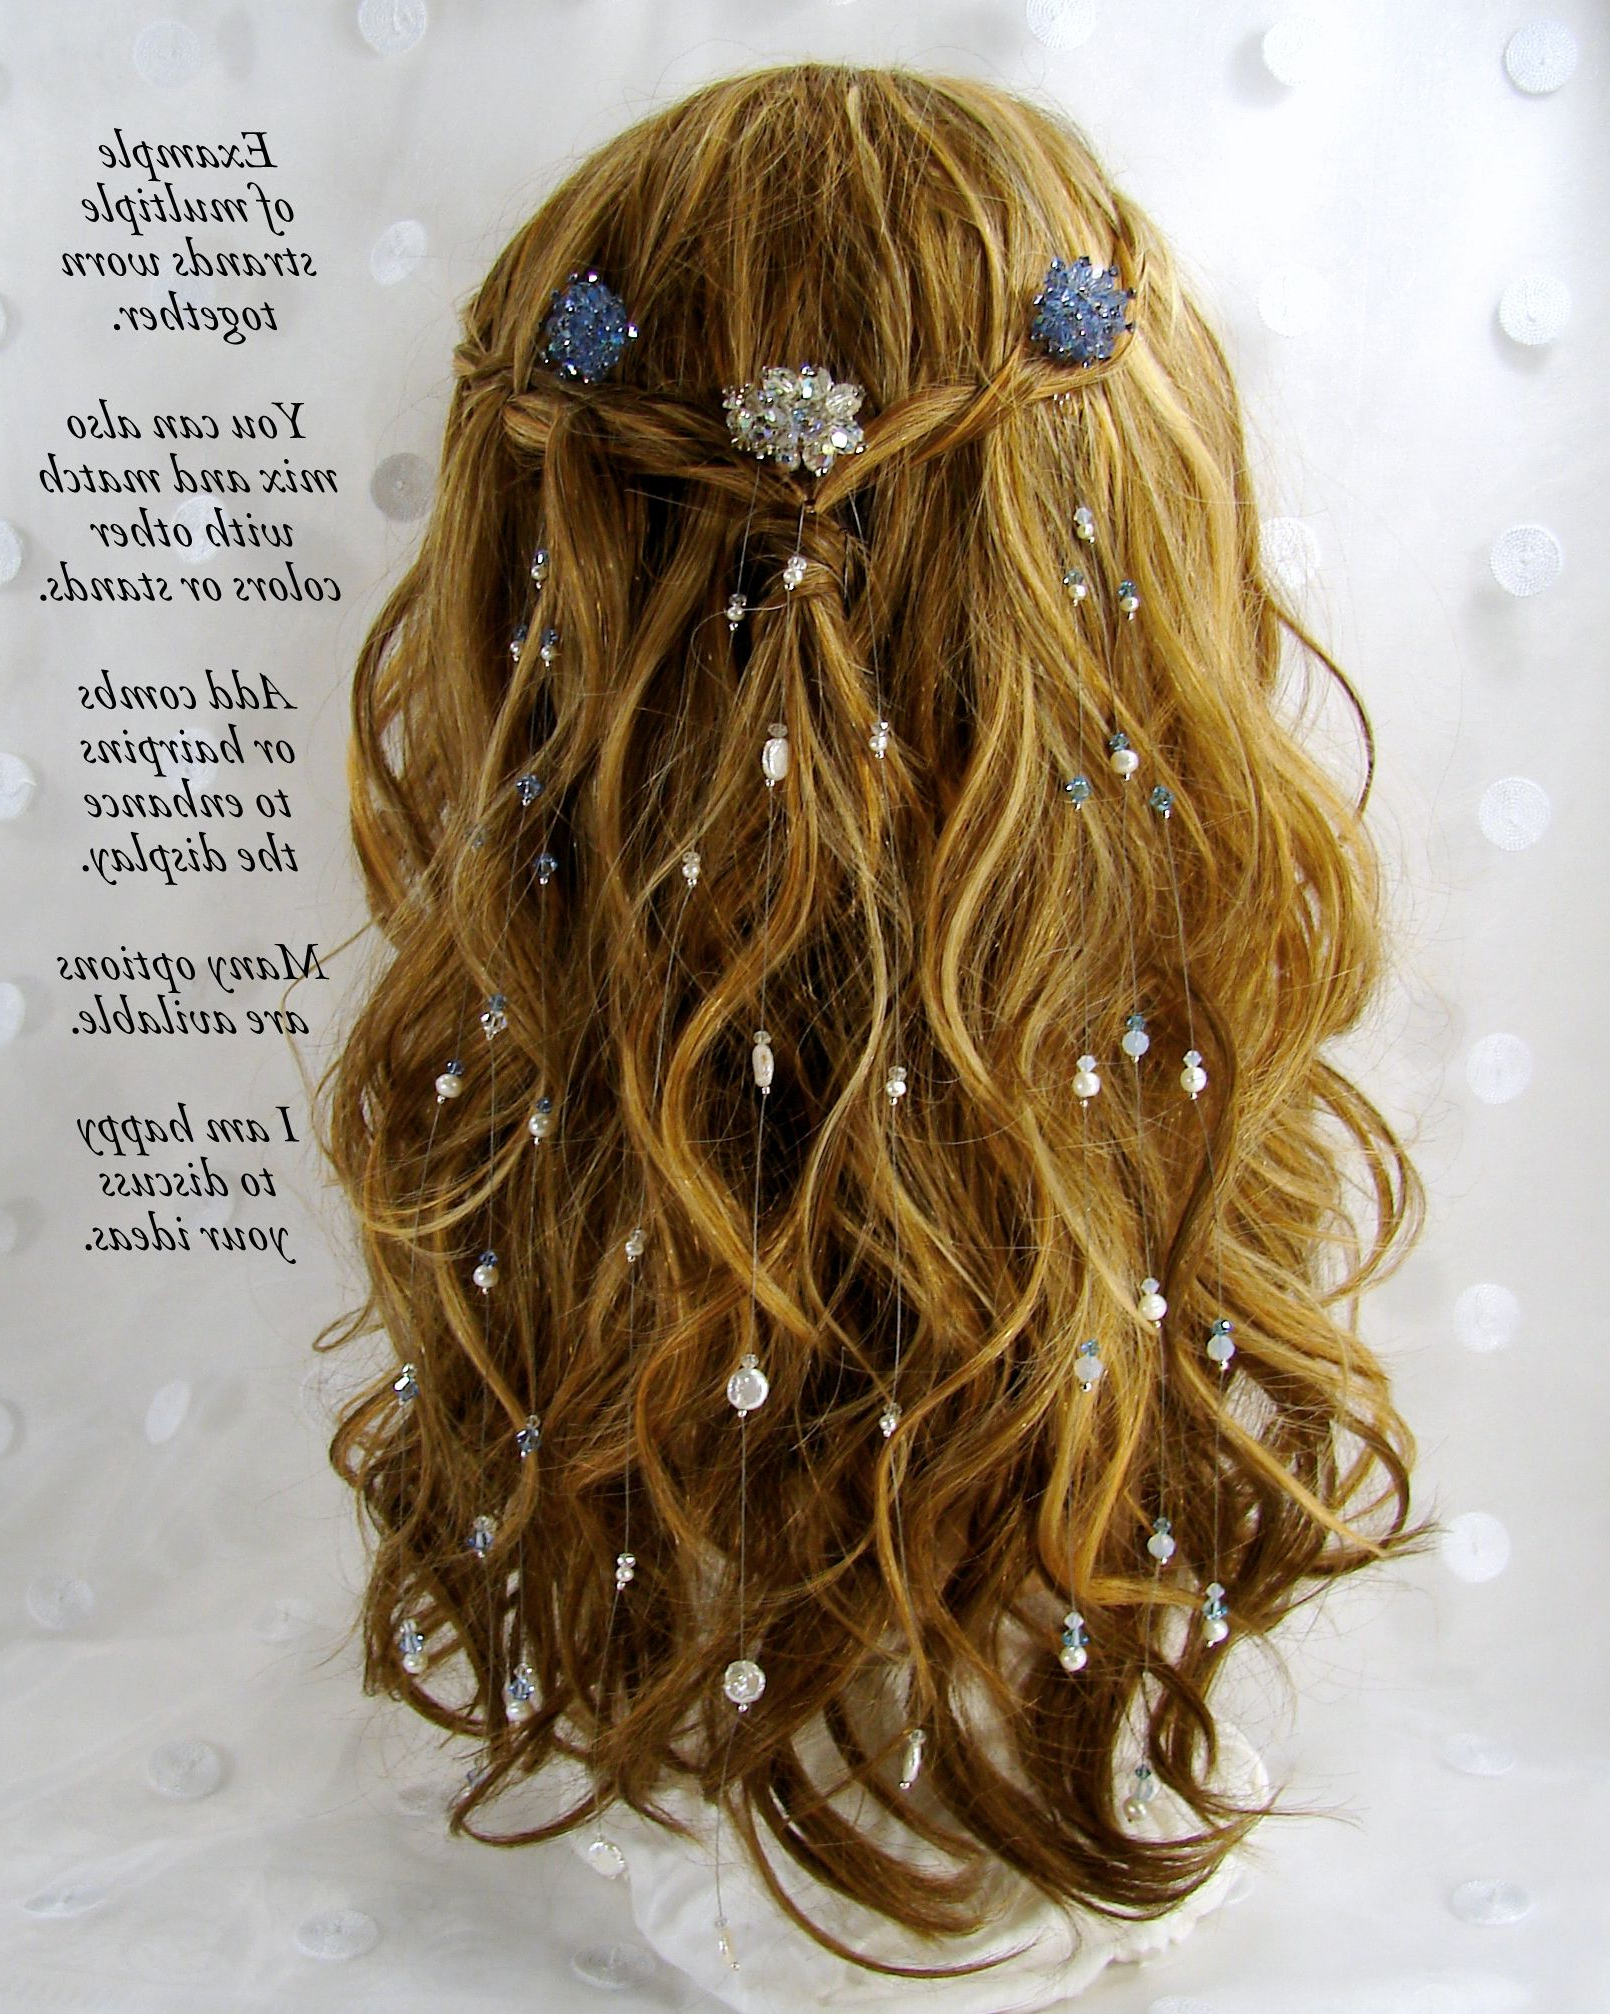 Hair Extensions Swarovski Crystals Freshwater Pearls Bohemian Intended For 2018 Graded Ponytail Hairstyles With A Butterfly Clasp (View 7 of 20)